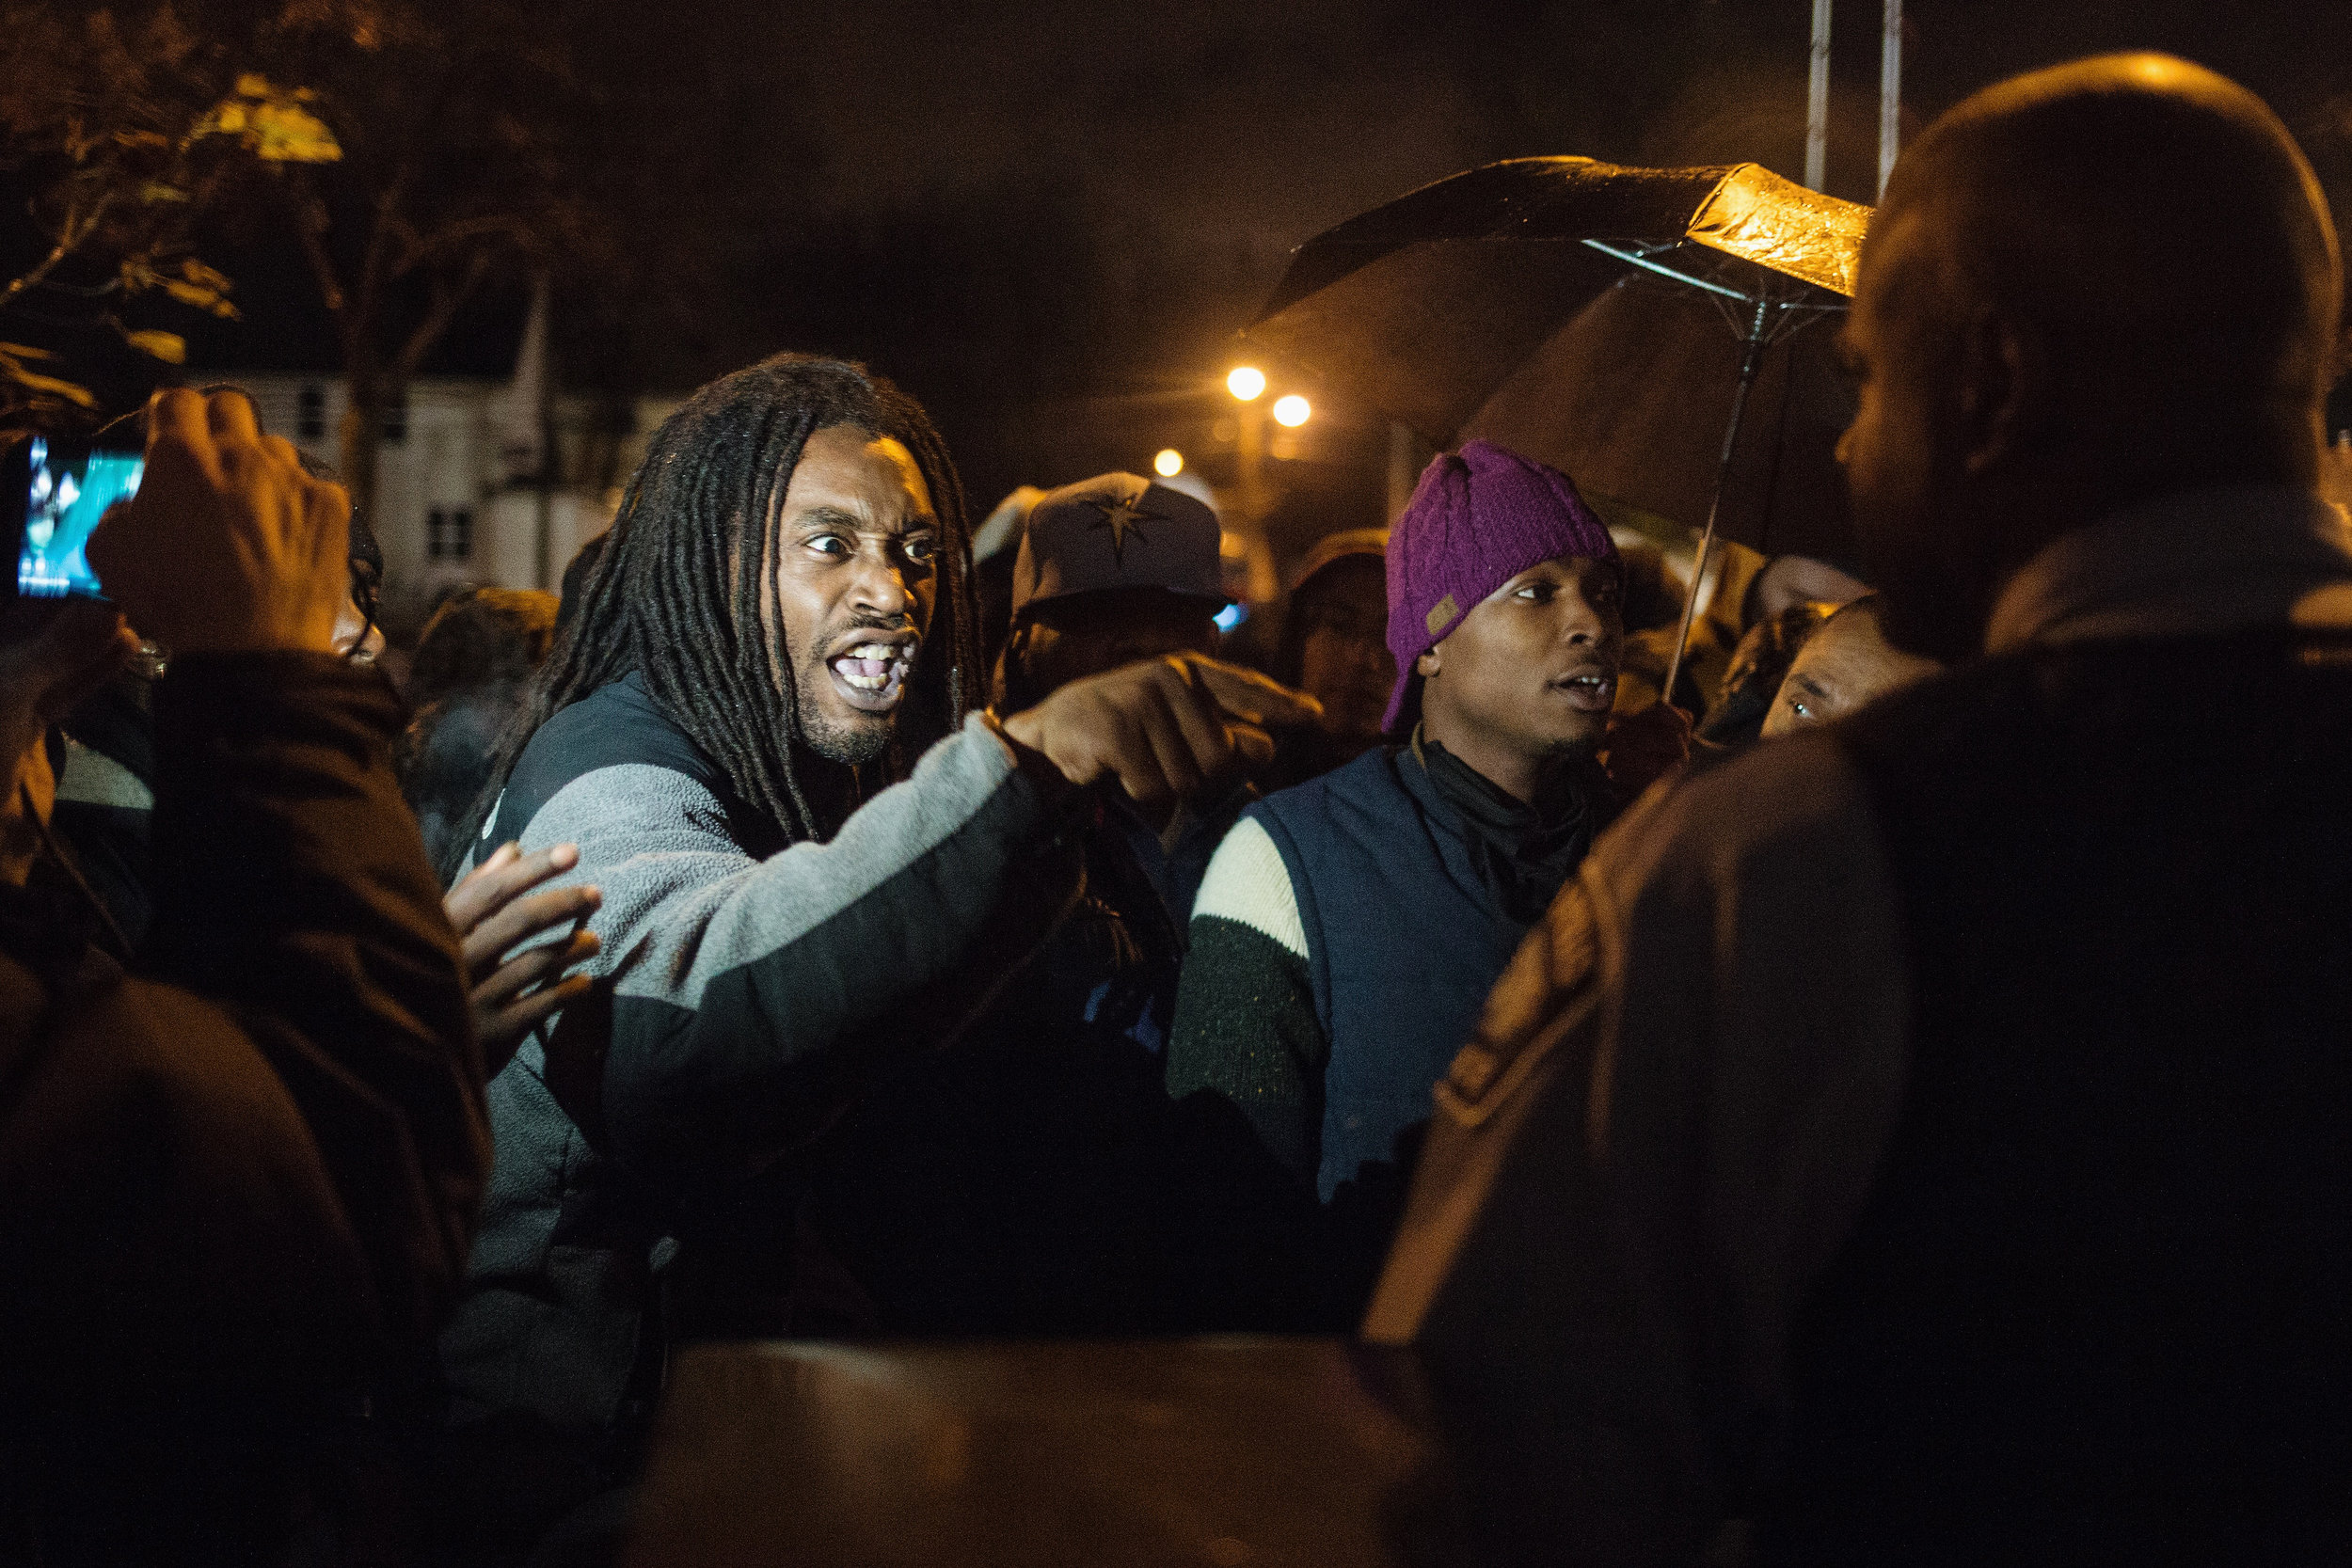 Christon Hickman, 30, of North Minneapolis confronts MPD Lt. Arthur Knight outside of the front entrance of the 4th Precinct on Wednesday evening, Nov. 18, 2015.